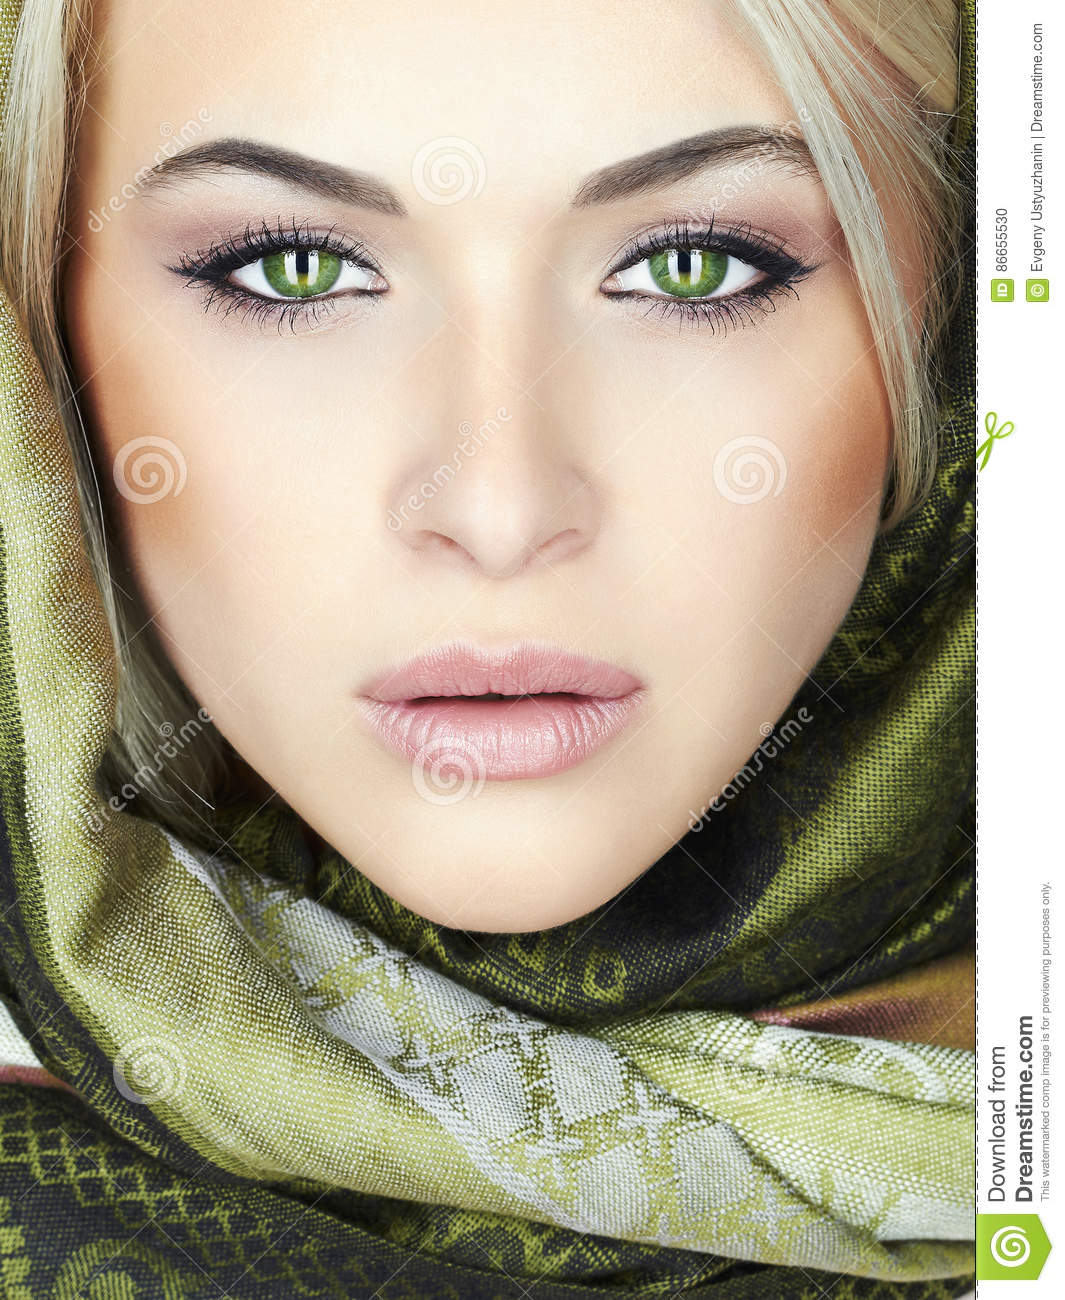 b66587734b7266 Beautiful Woman With Green Eyes Stock Photo - Image of lovely ...